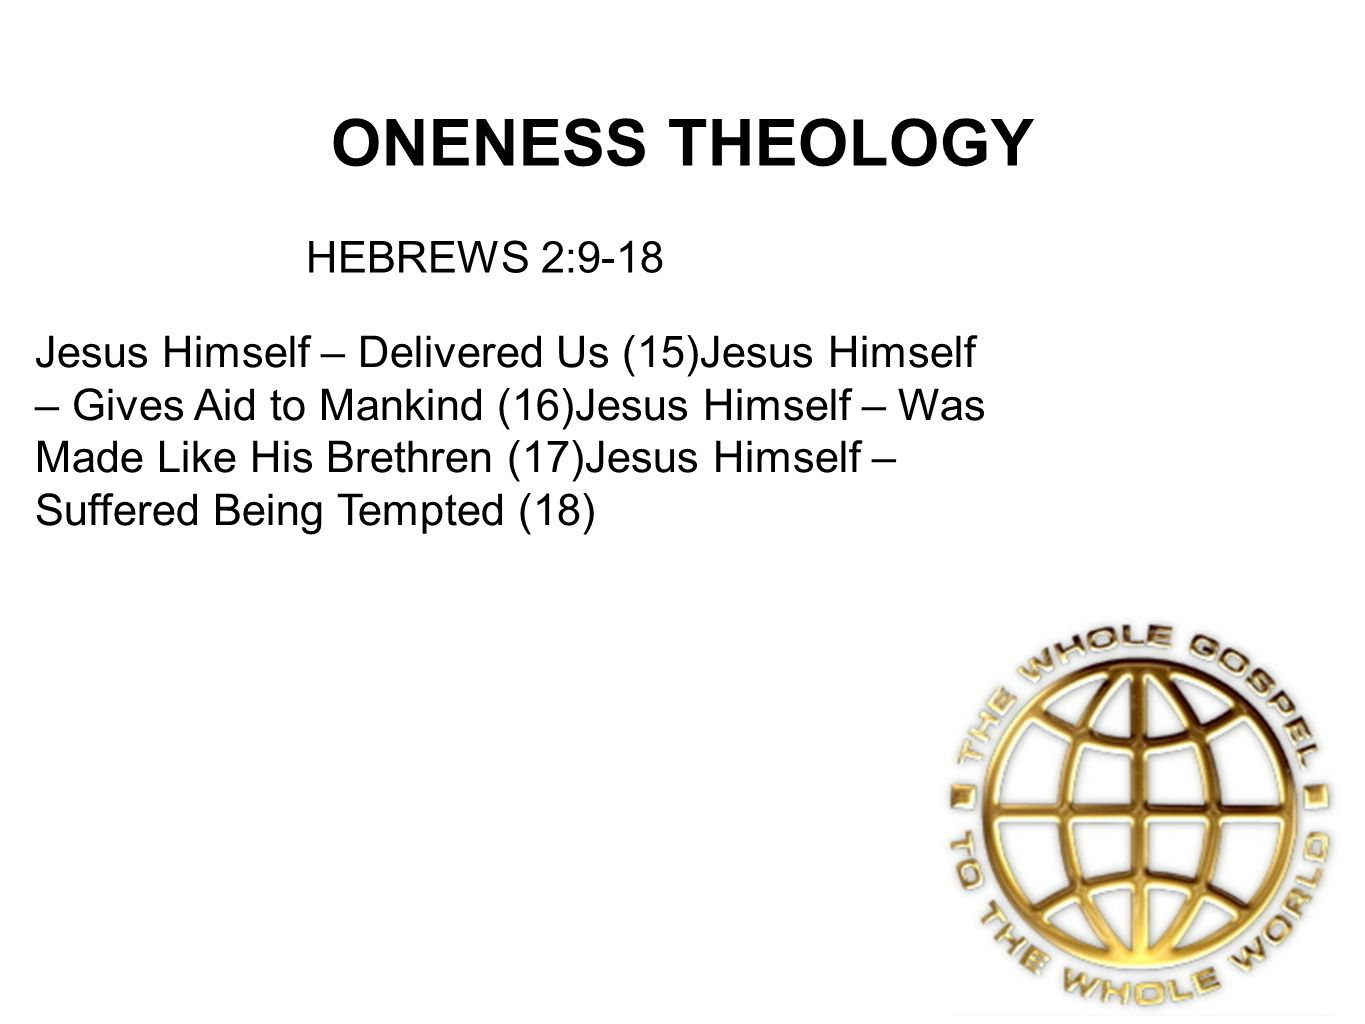 ONENESS THEOLOGY Jesus Himself – Delivered Us (15)Jesus Himself – Gives Aid to Mankind (16)Jesus Himself – Was Made Like His Brethren (17)Jesus Himself – Suffered Being Tempted (18) HEBREWS 2:9-18